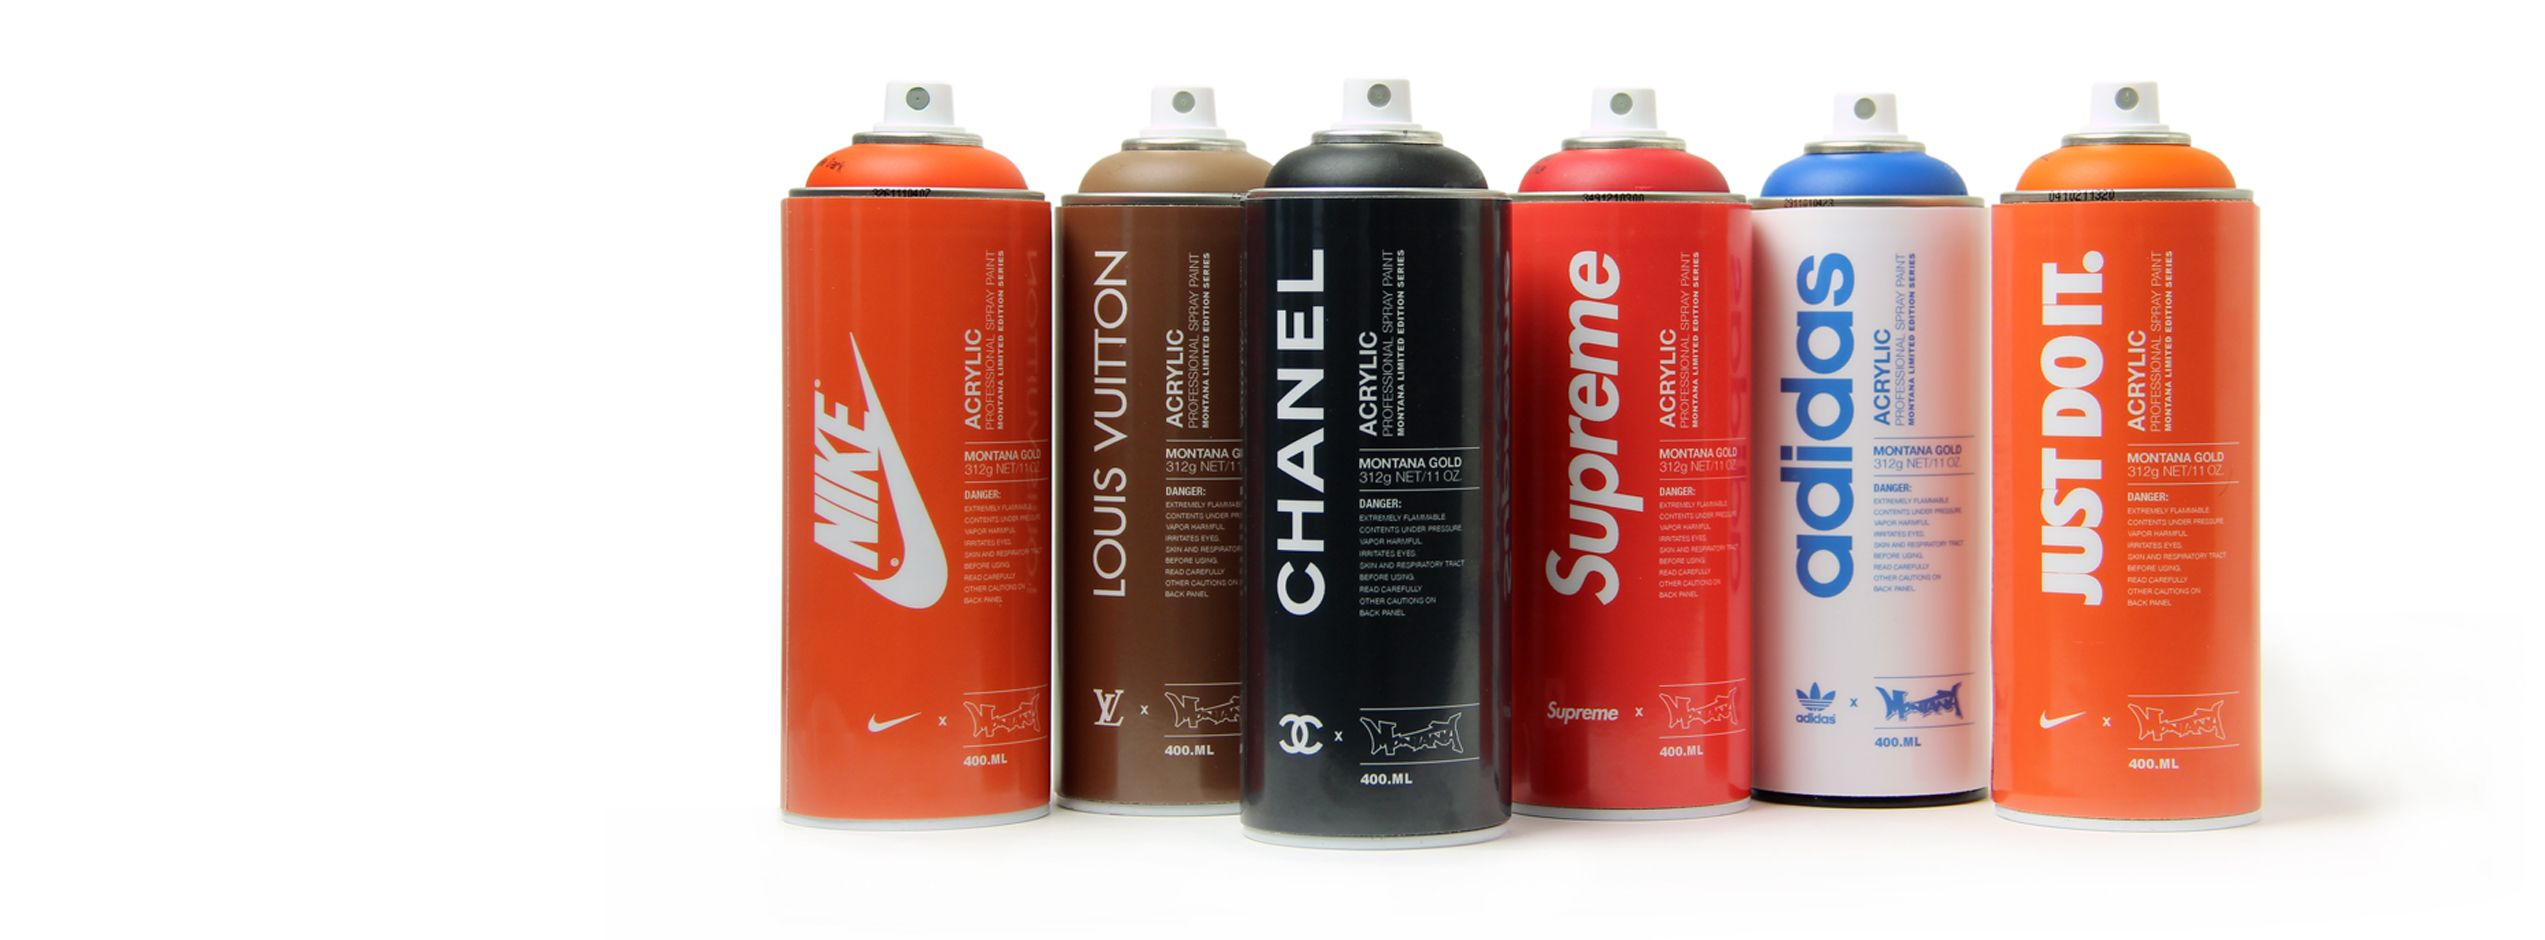 Brands Of Spray Paint Part - 17: Top Fashion Brands As Spray Can By Antonia Brasko | 1 Design Per Day